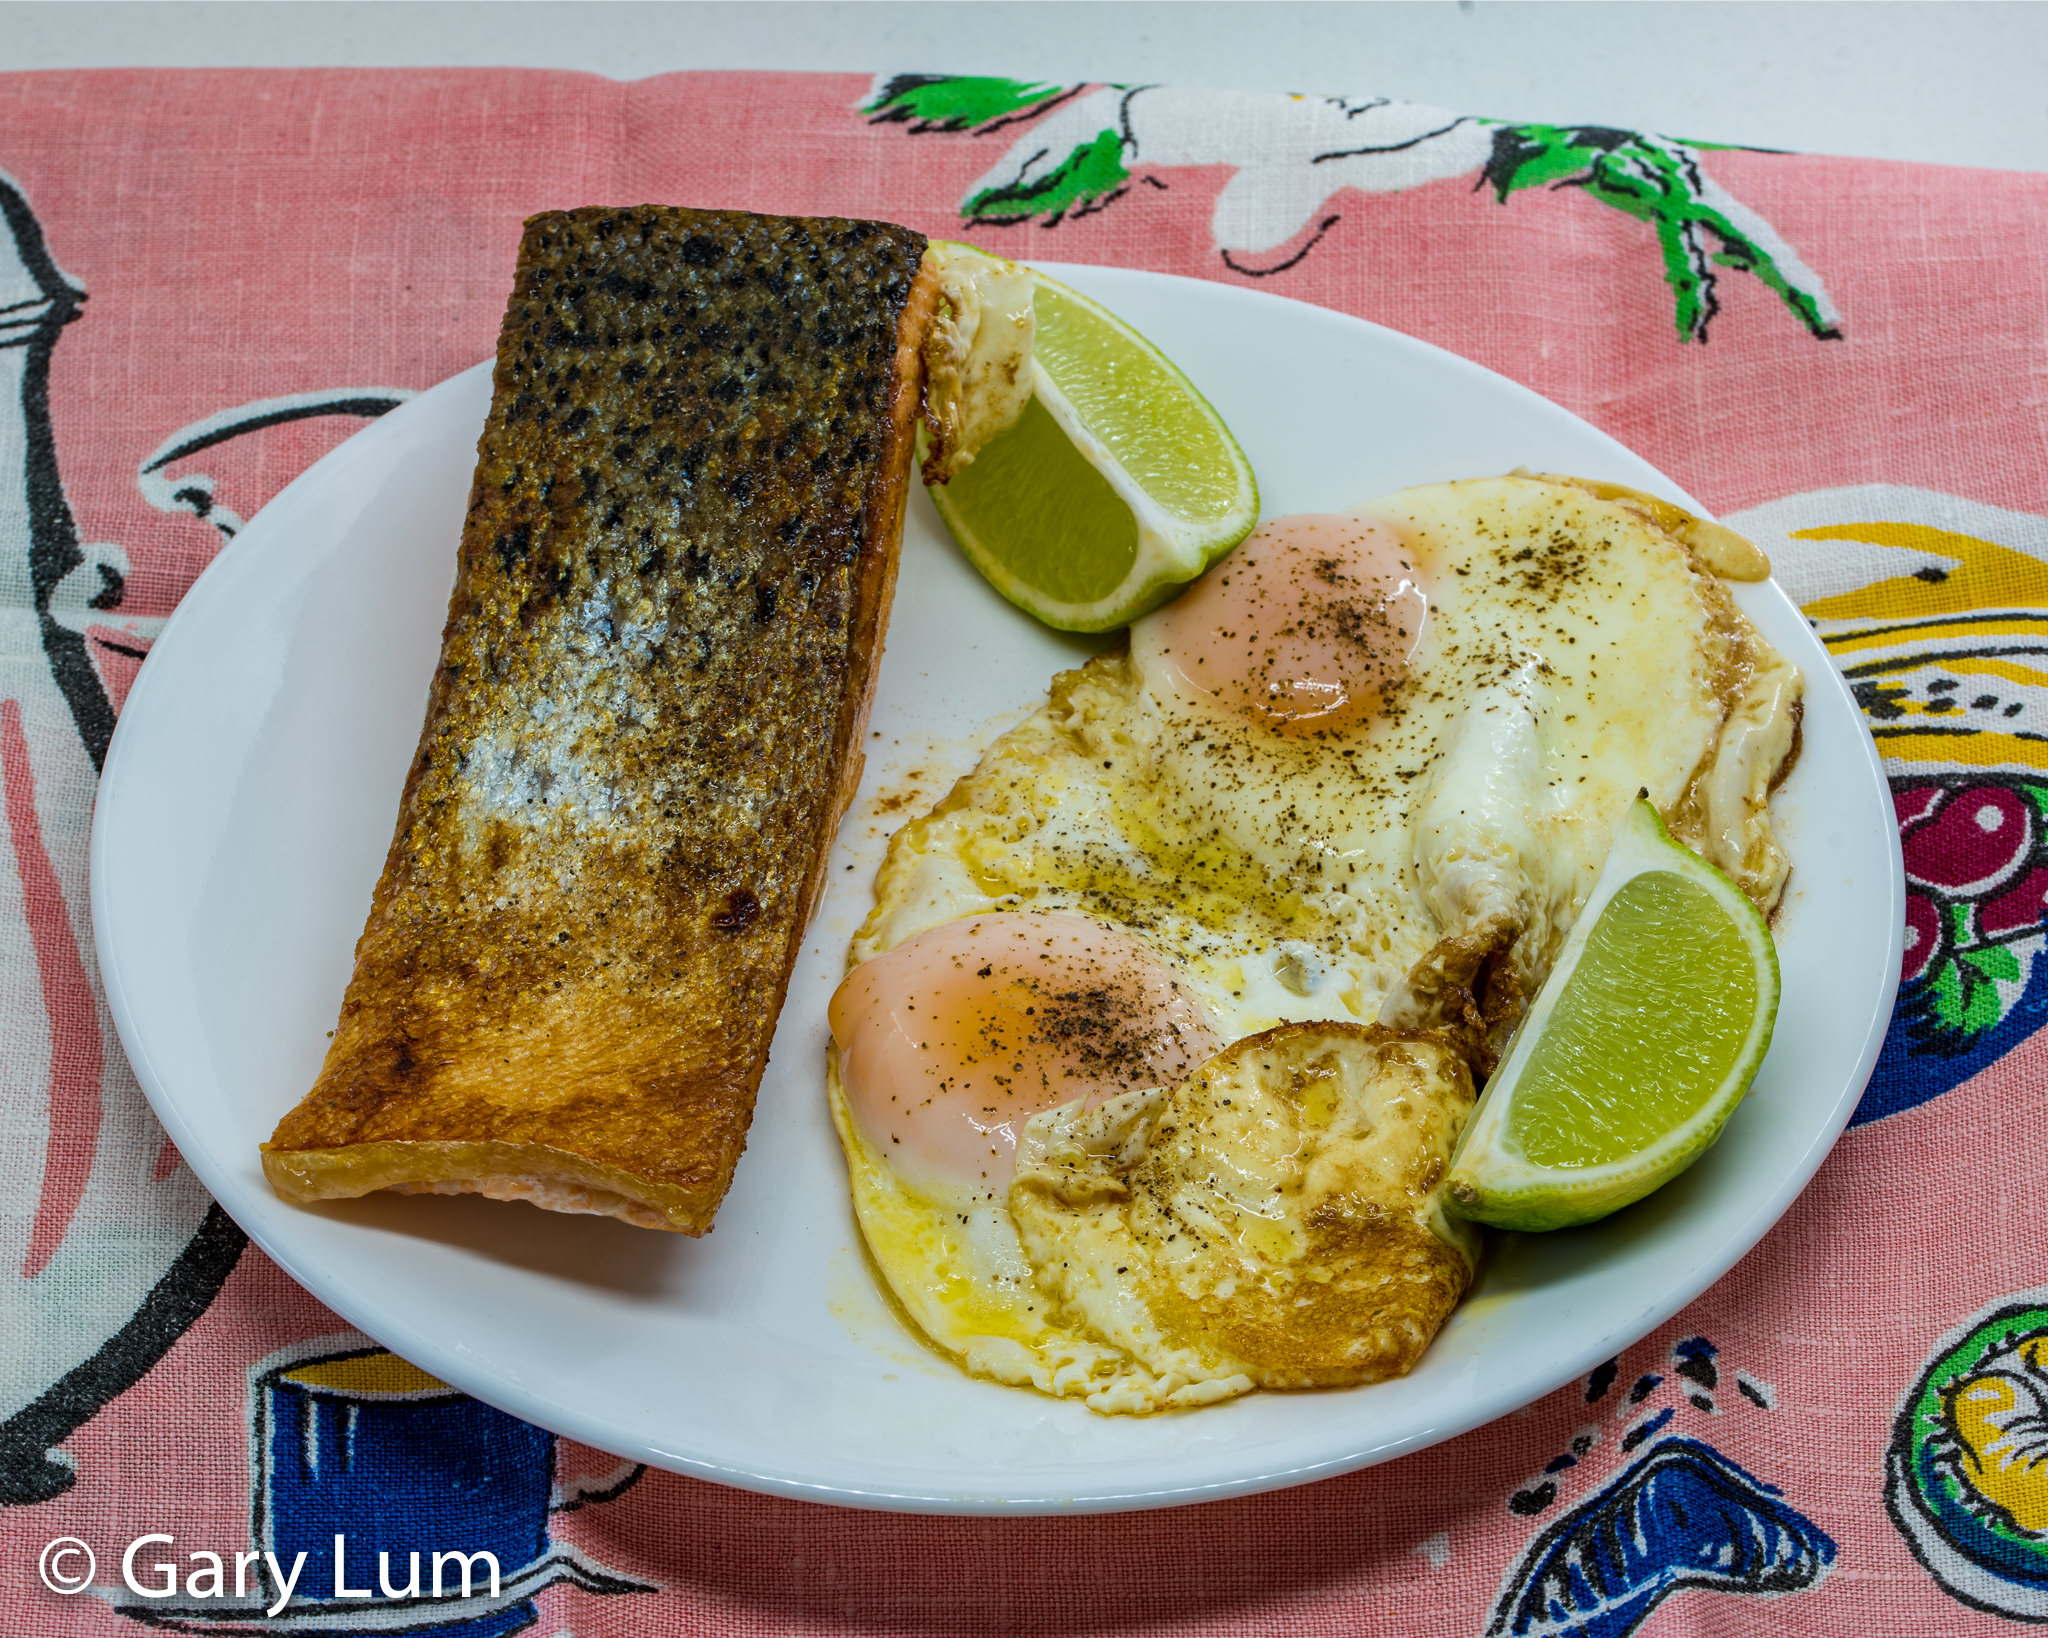 Pan-fried salmon with fried eggs. Gary Lum.